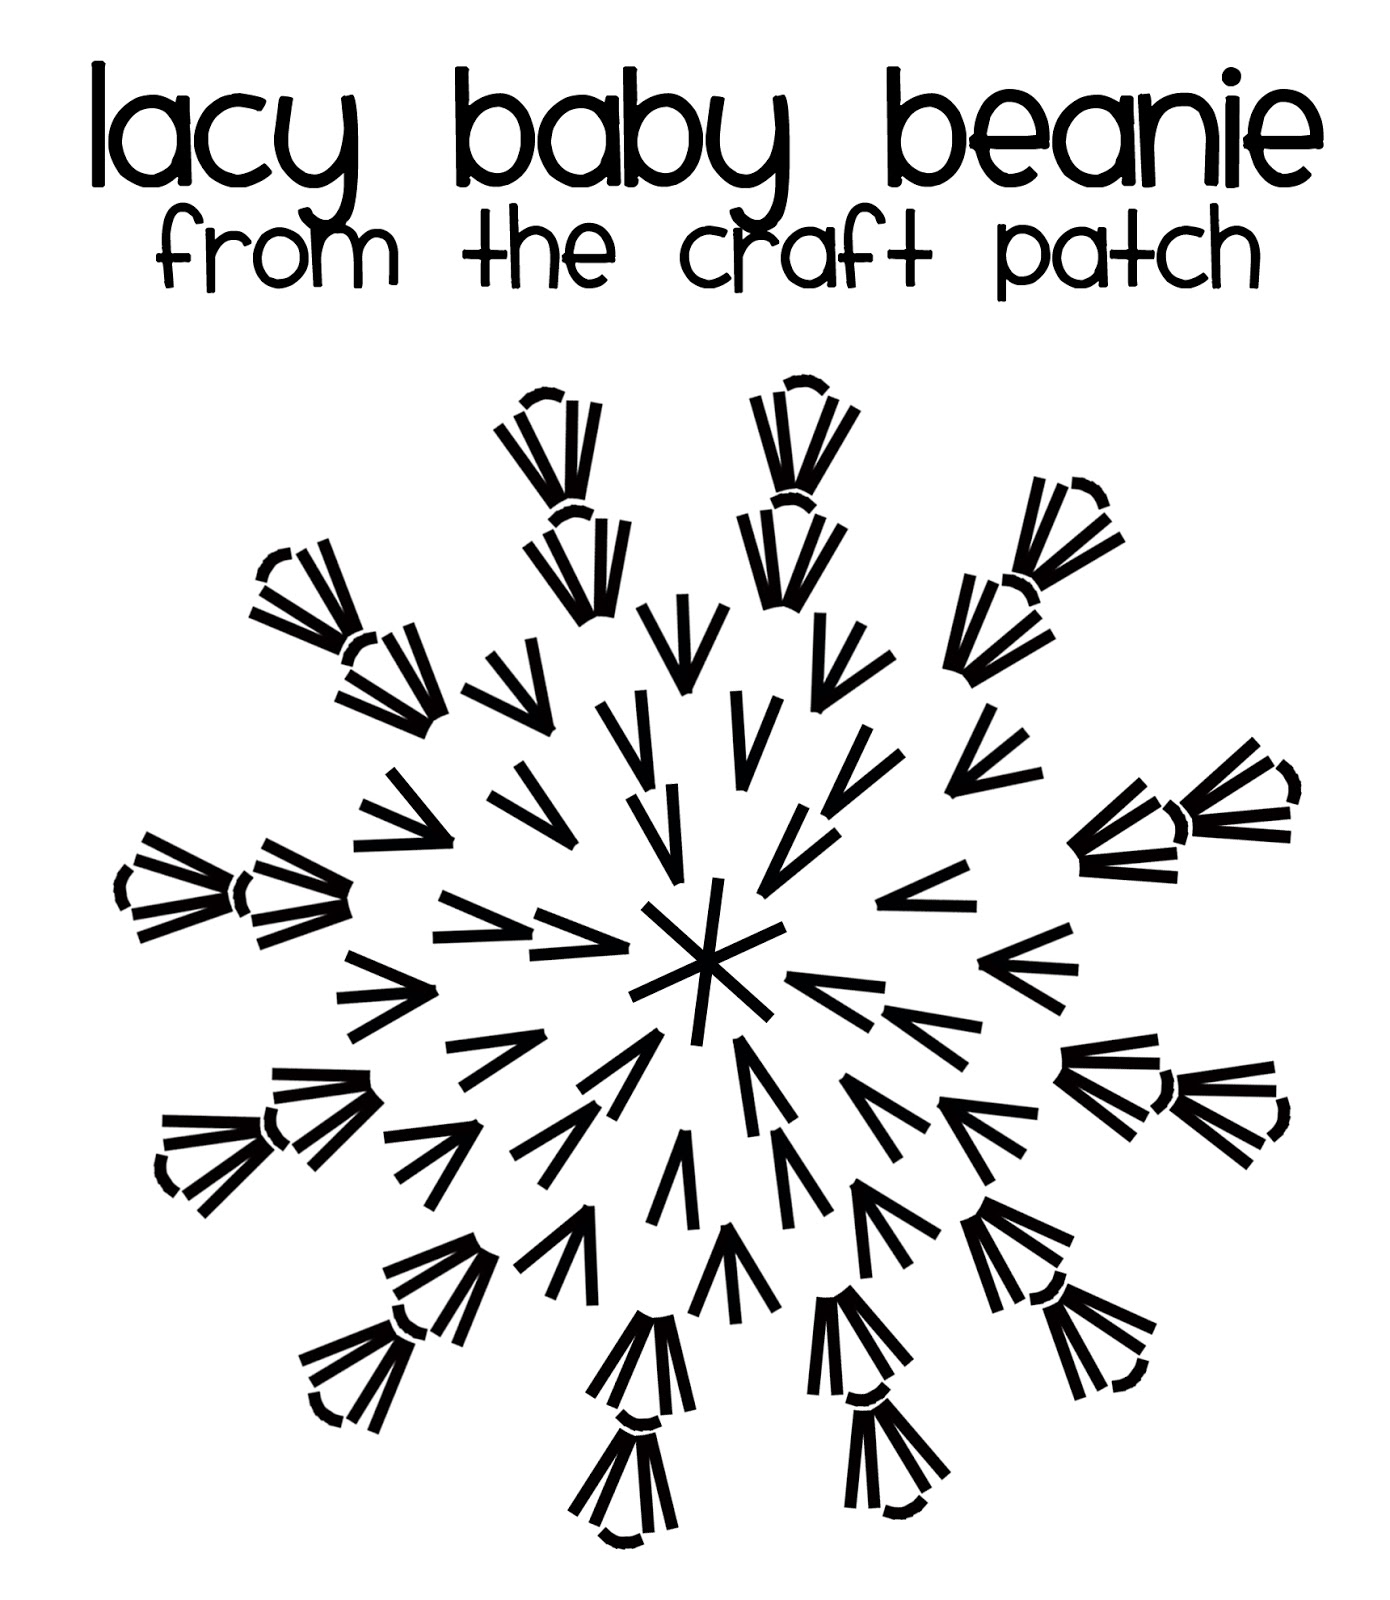 Lacy crochet baby beanie thecraftpatchblog crochet hat patterns ccuart